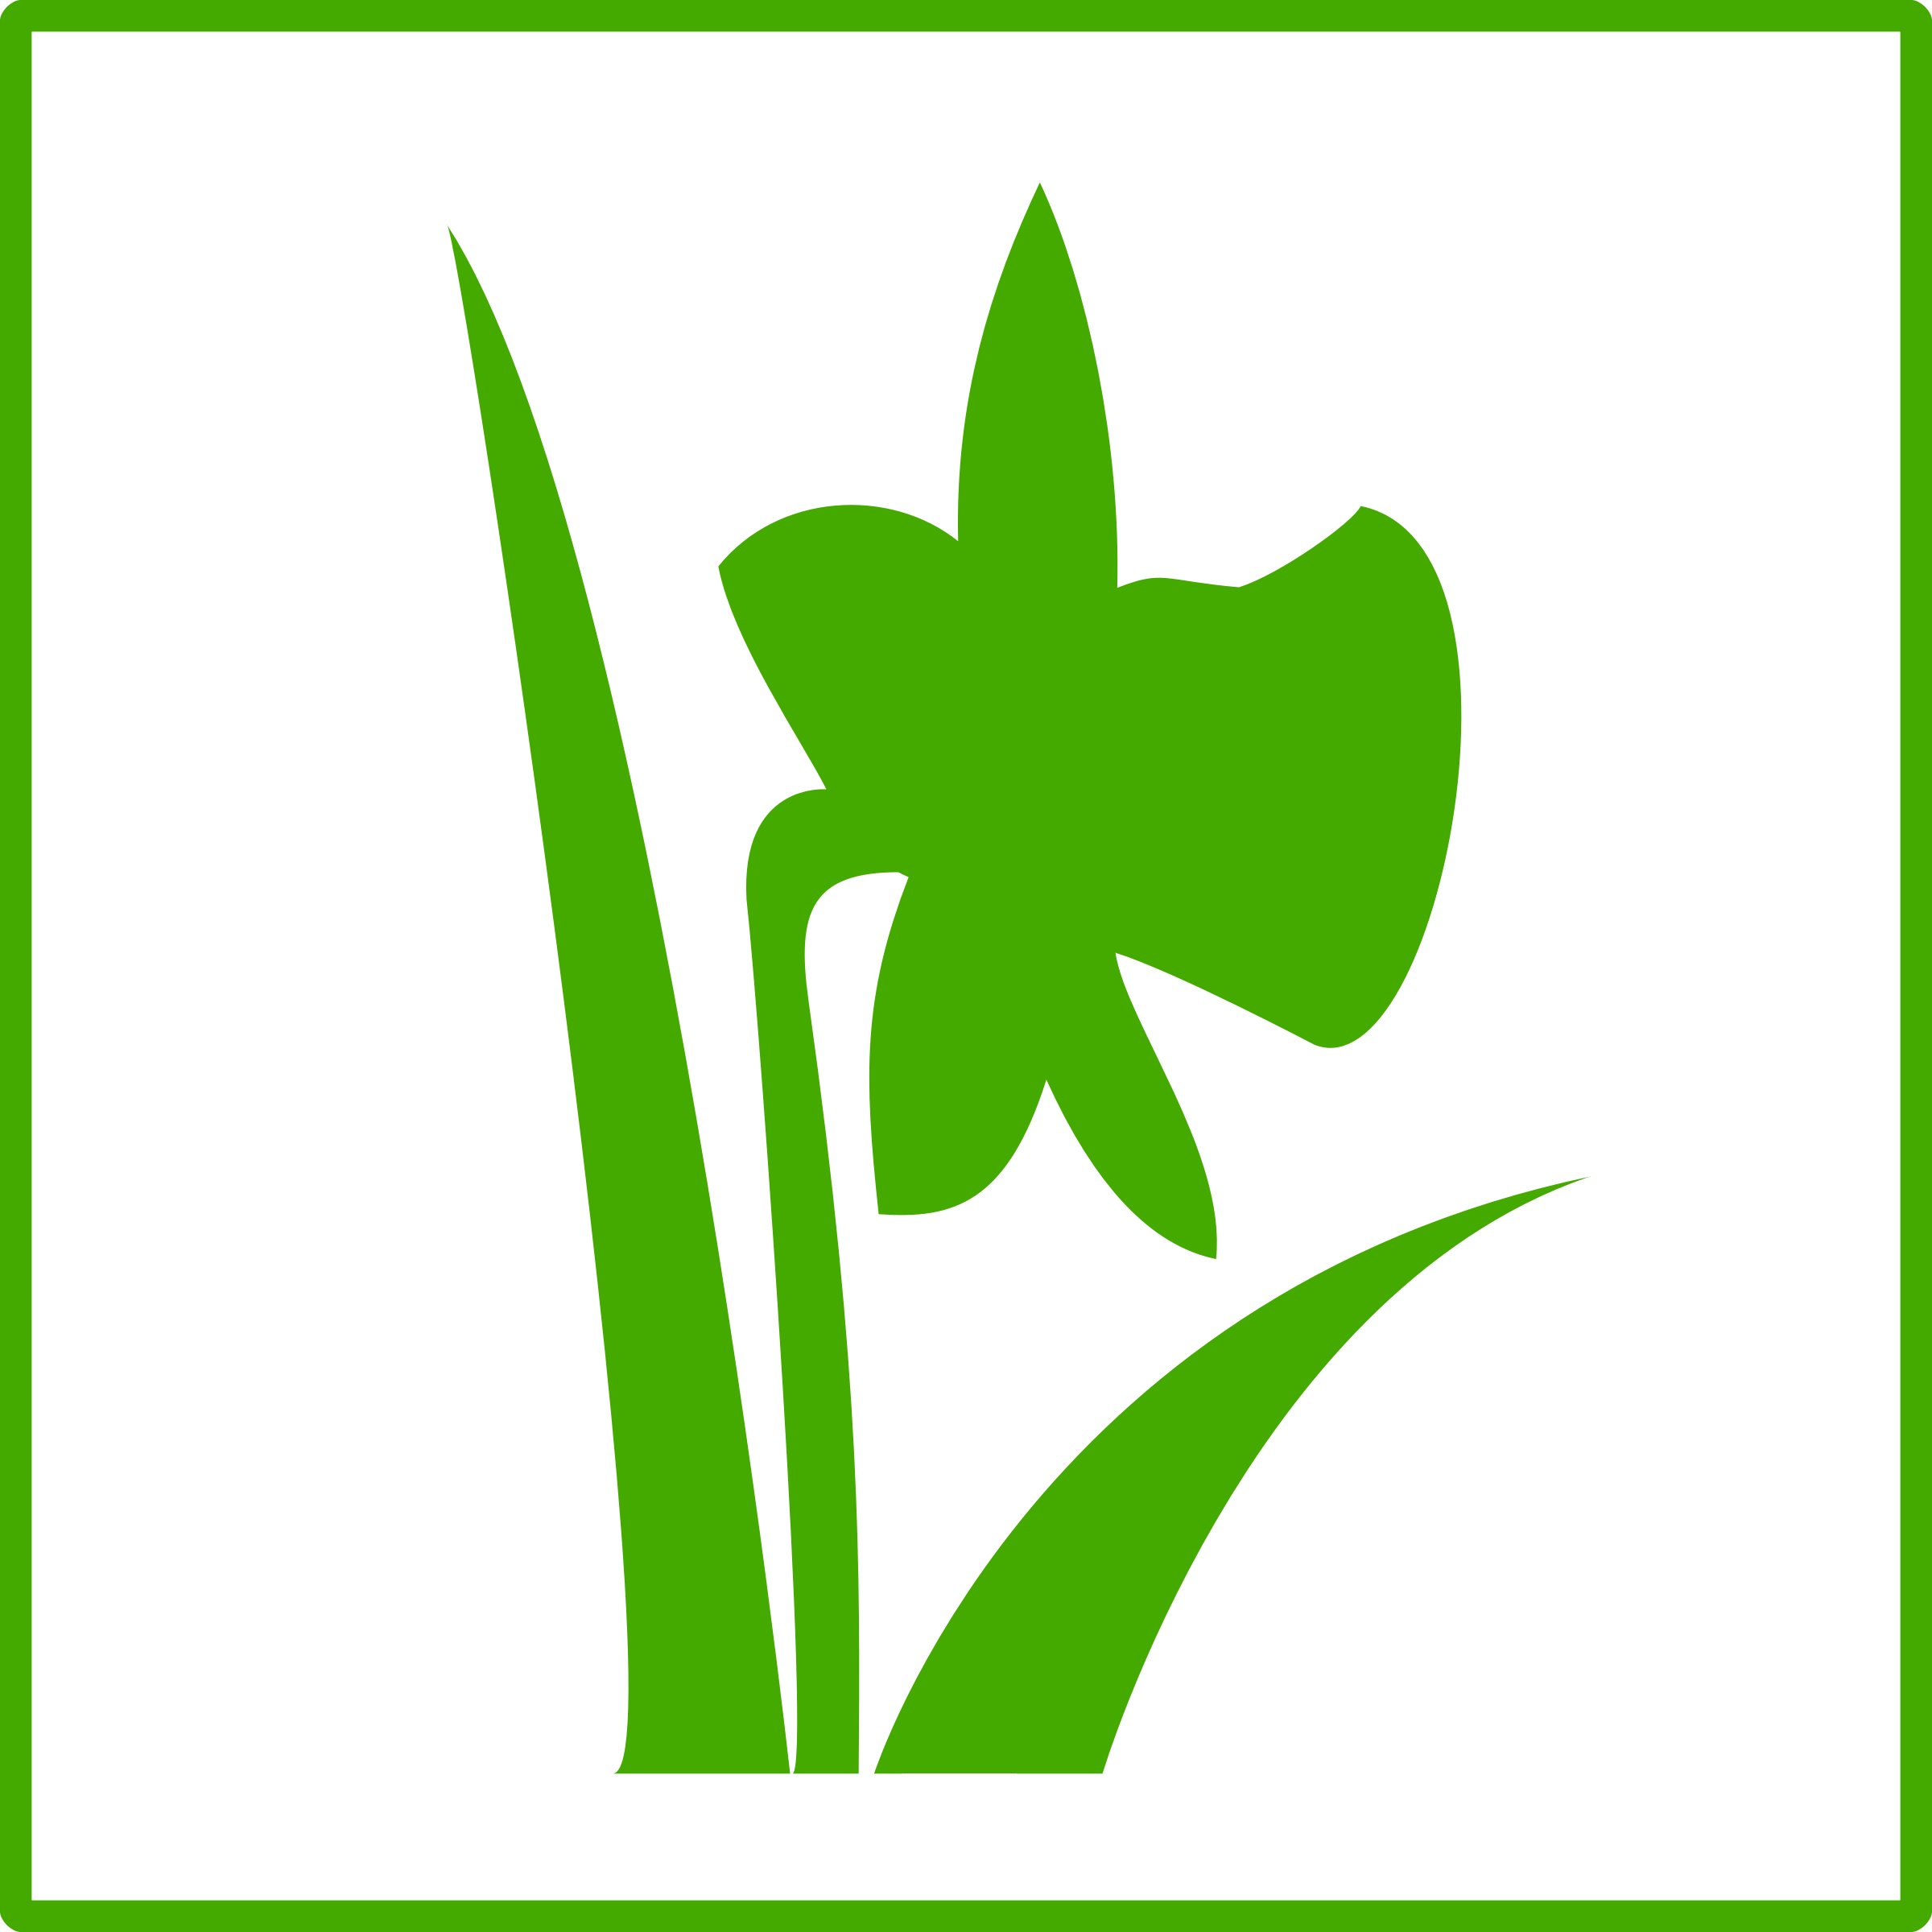 Green flower clipart black and white download Clipart - Eco green flower icon black and white download